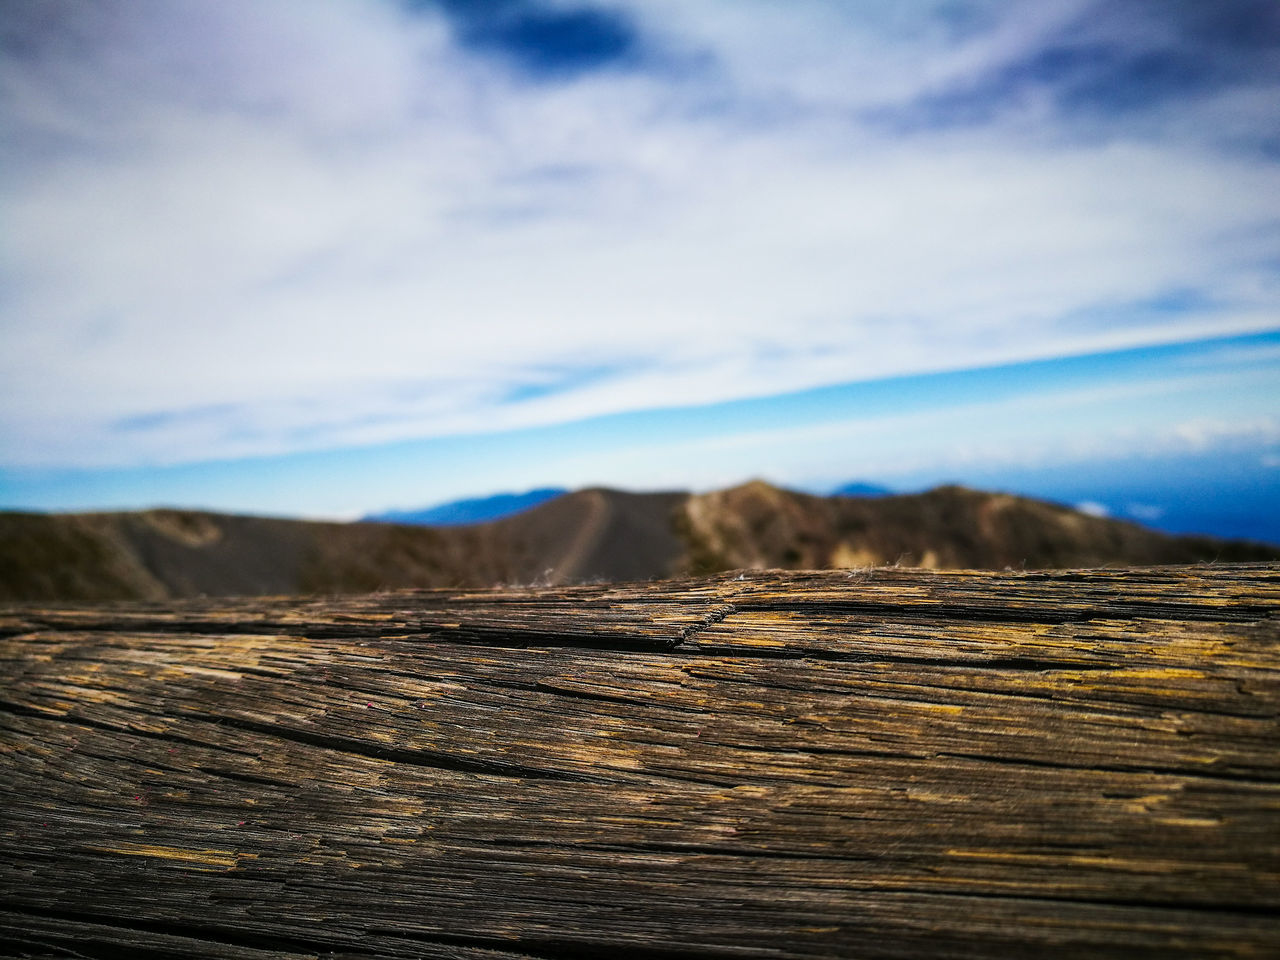 wood - material, nature, cloud - sky, sky, no people, tranquility, outdoors, beauty in nature, log, day, tranquil scene, textured, scenics, landscape, close-up